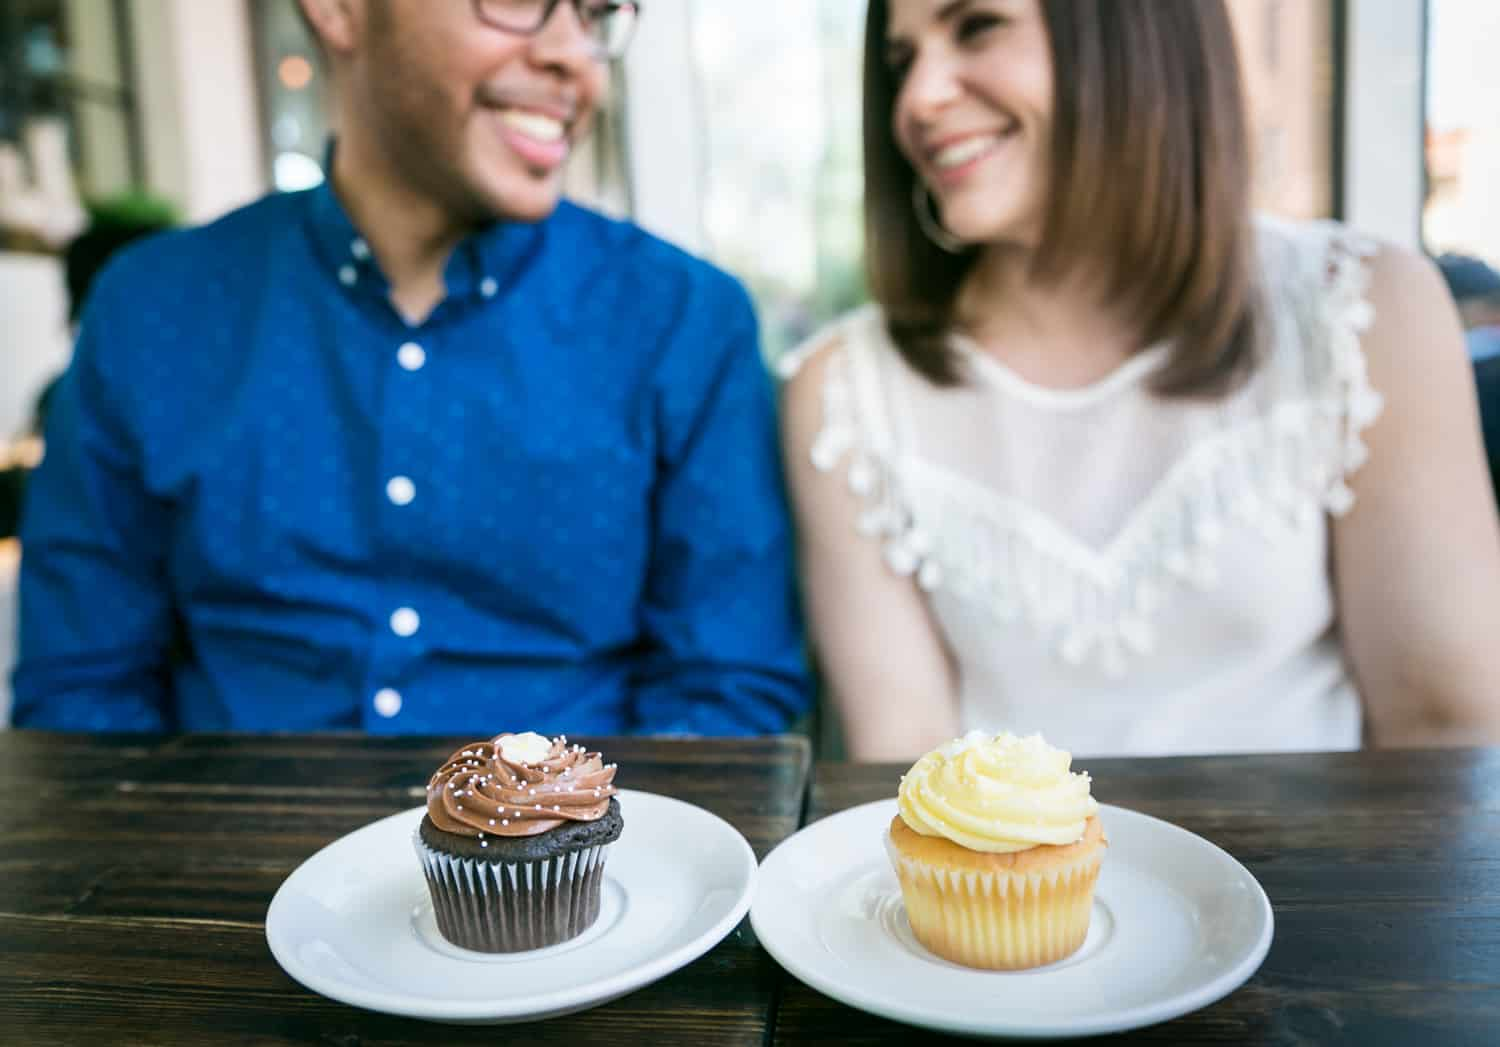 Two plates with cupcakes in front of a couple during an Astoria Park engagement shoot